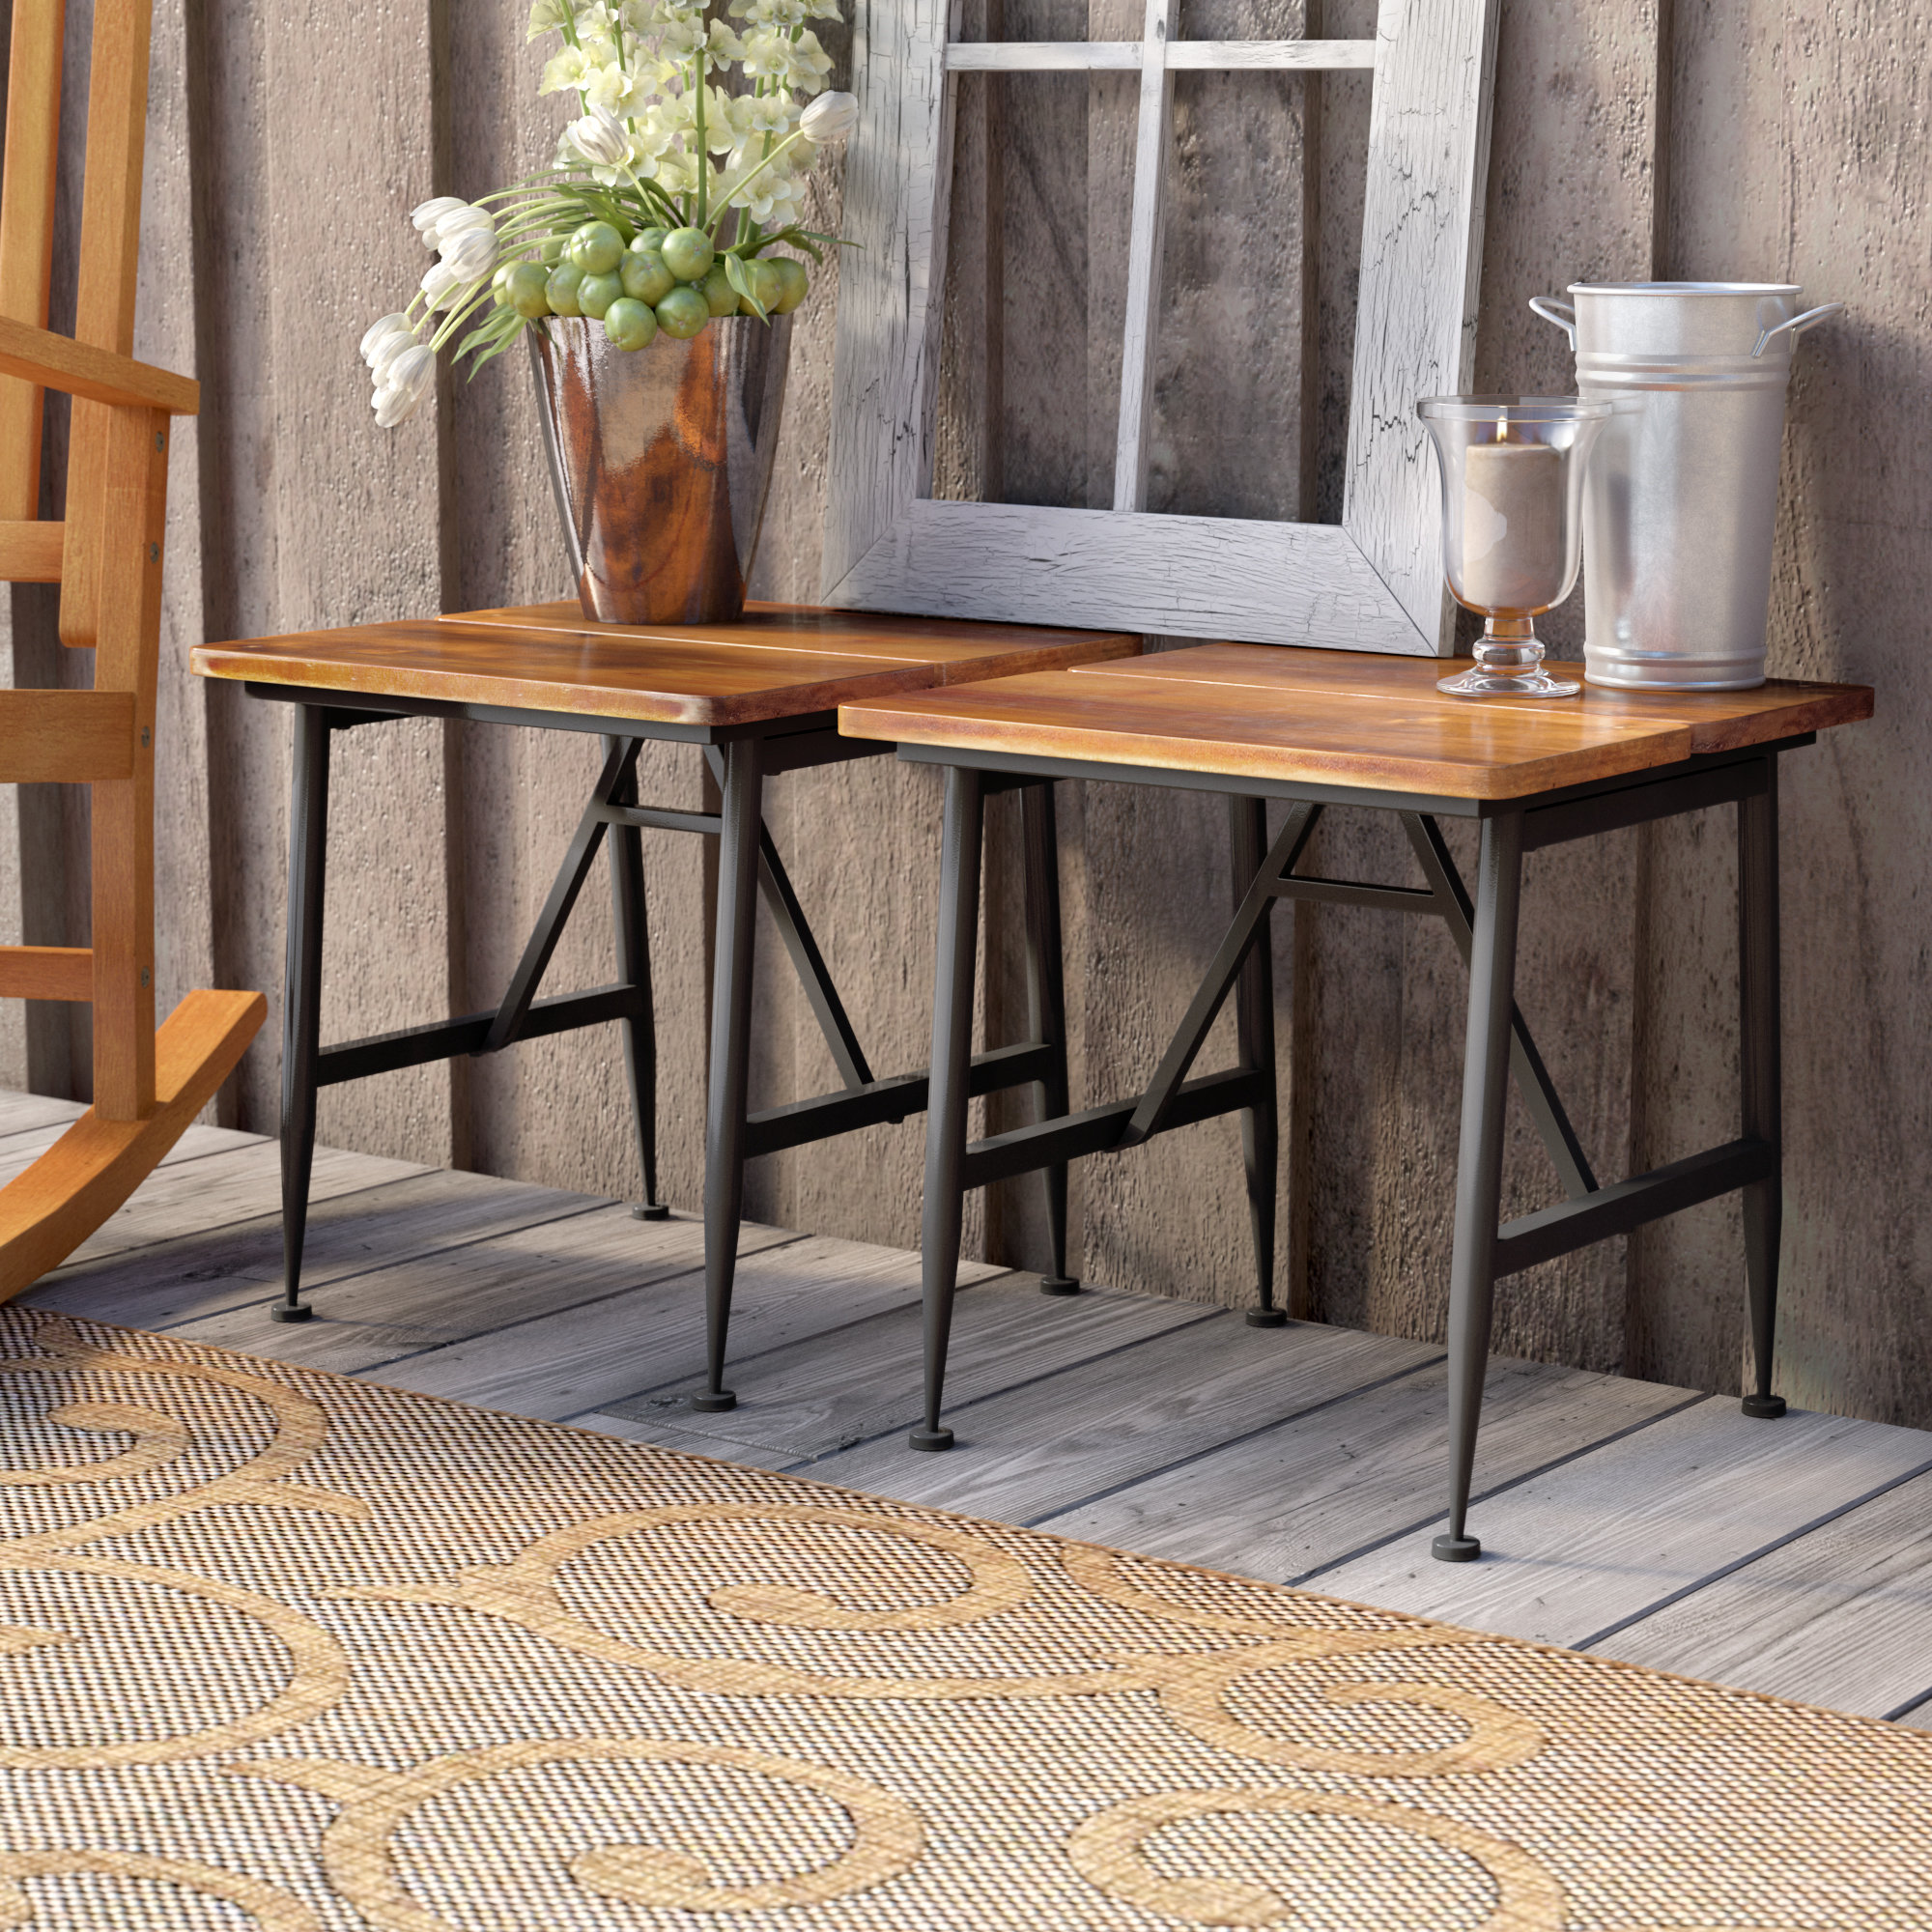 gracie oaks frankston outdoor wood accent table set reviews corner end unusual tables hairpin leg living room cabinets pottery barn coffee decor metal sofa round and inch covers